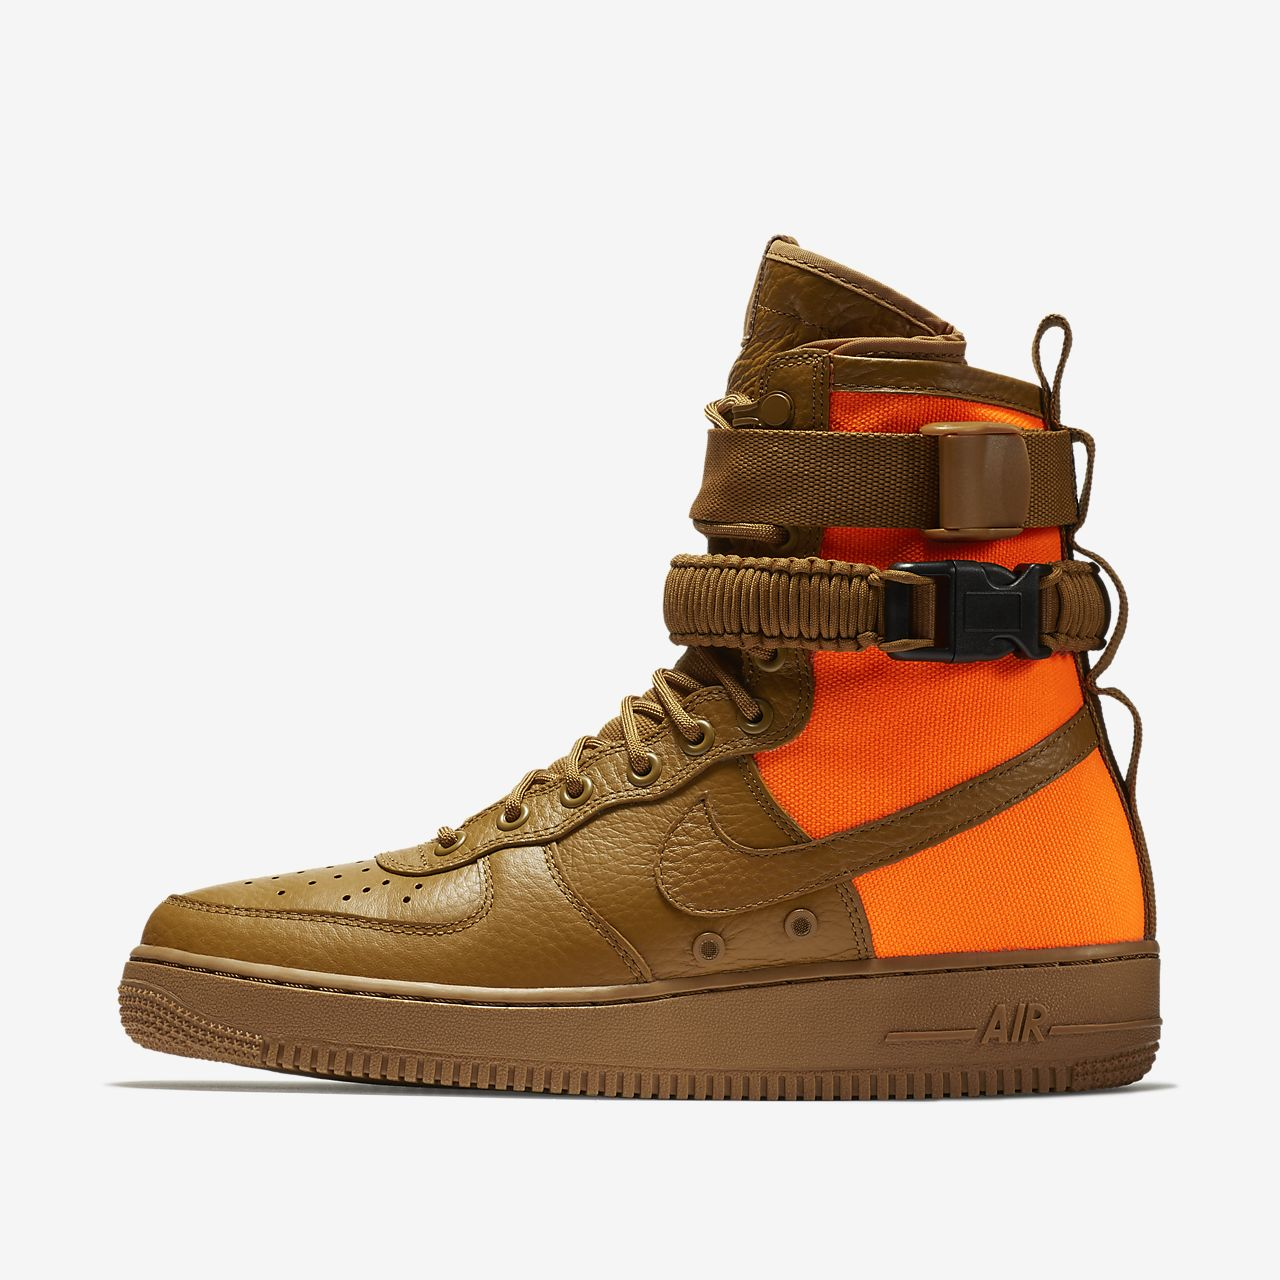 nike sf air force 1 mid men's shoe nz